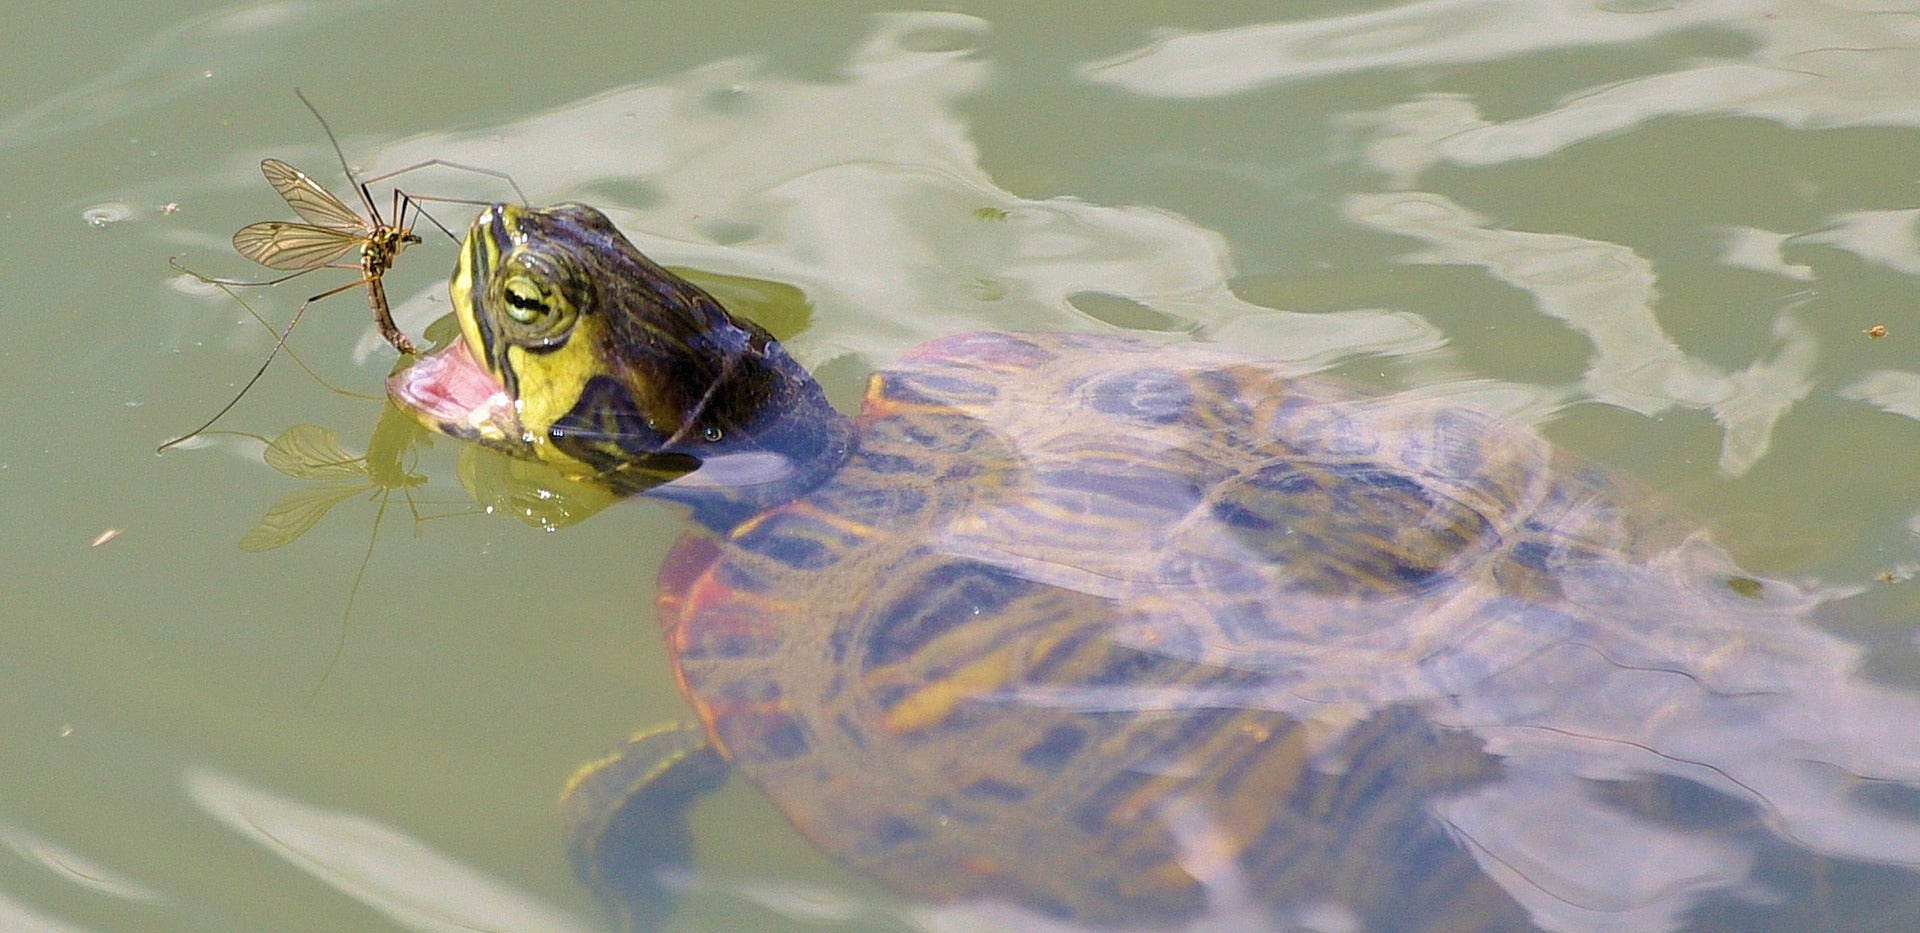 What Do Turtles Eat in Nature And How Do They Find Food?